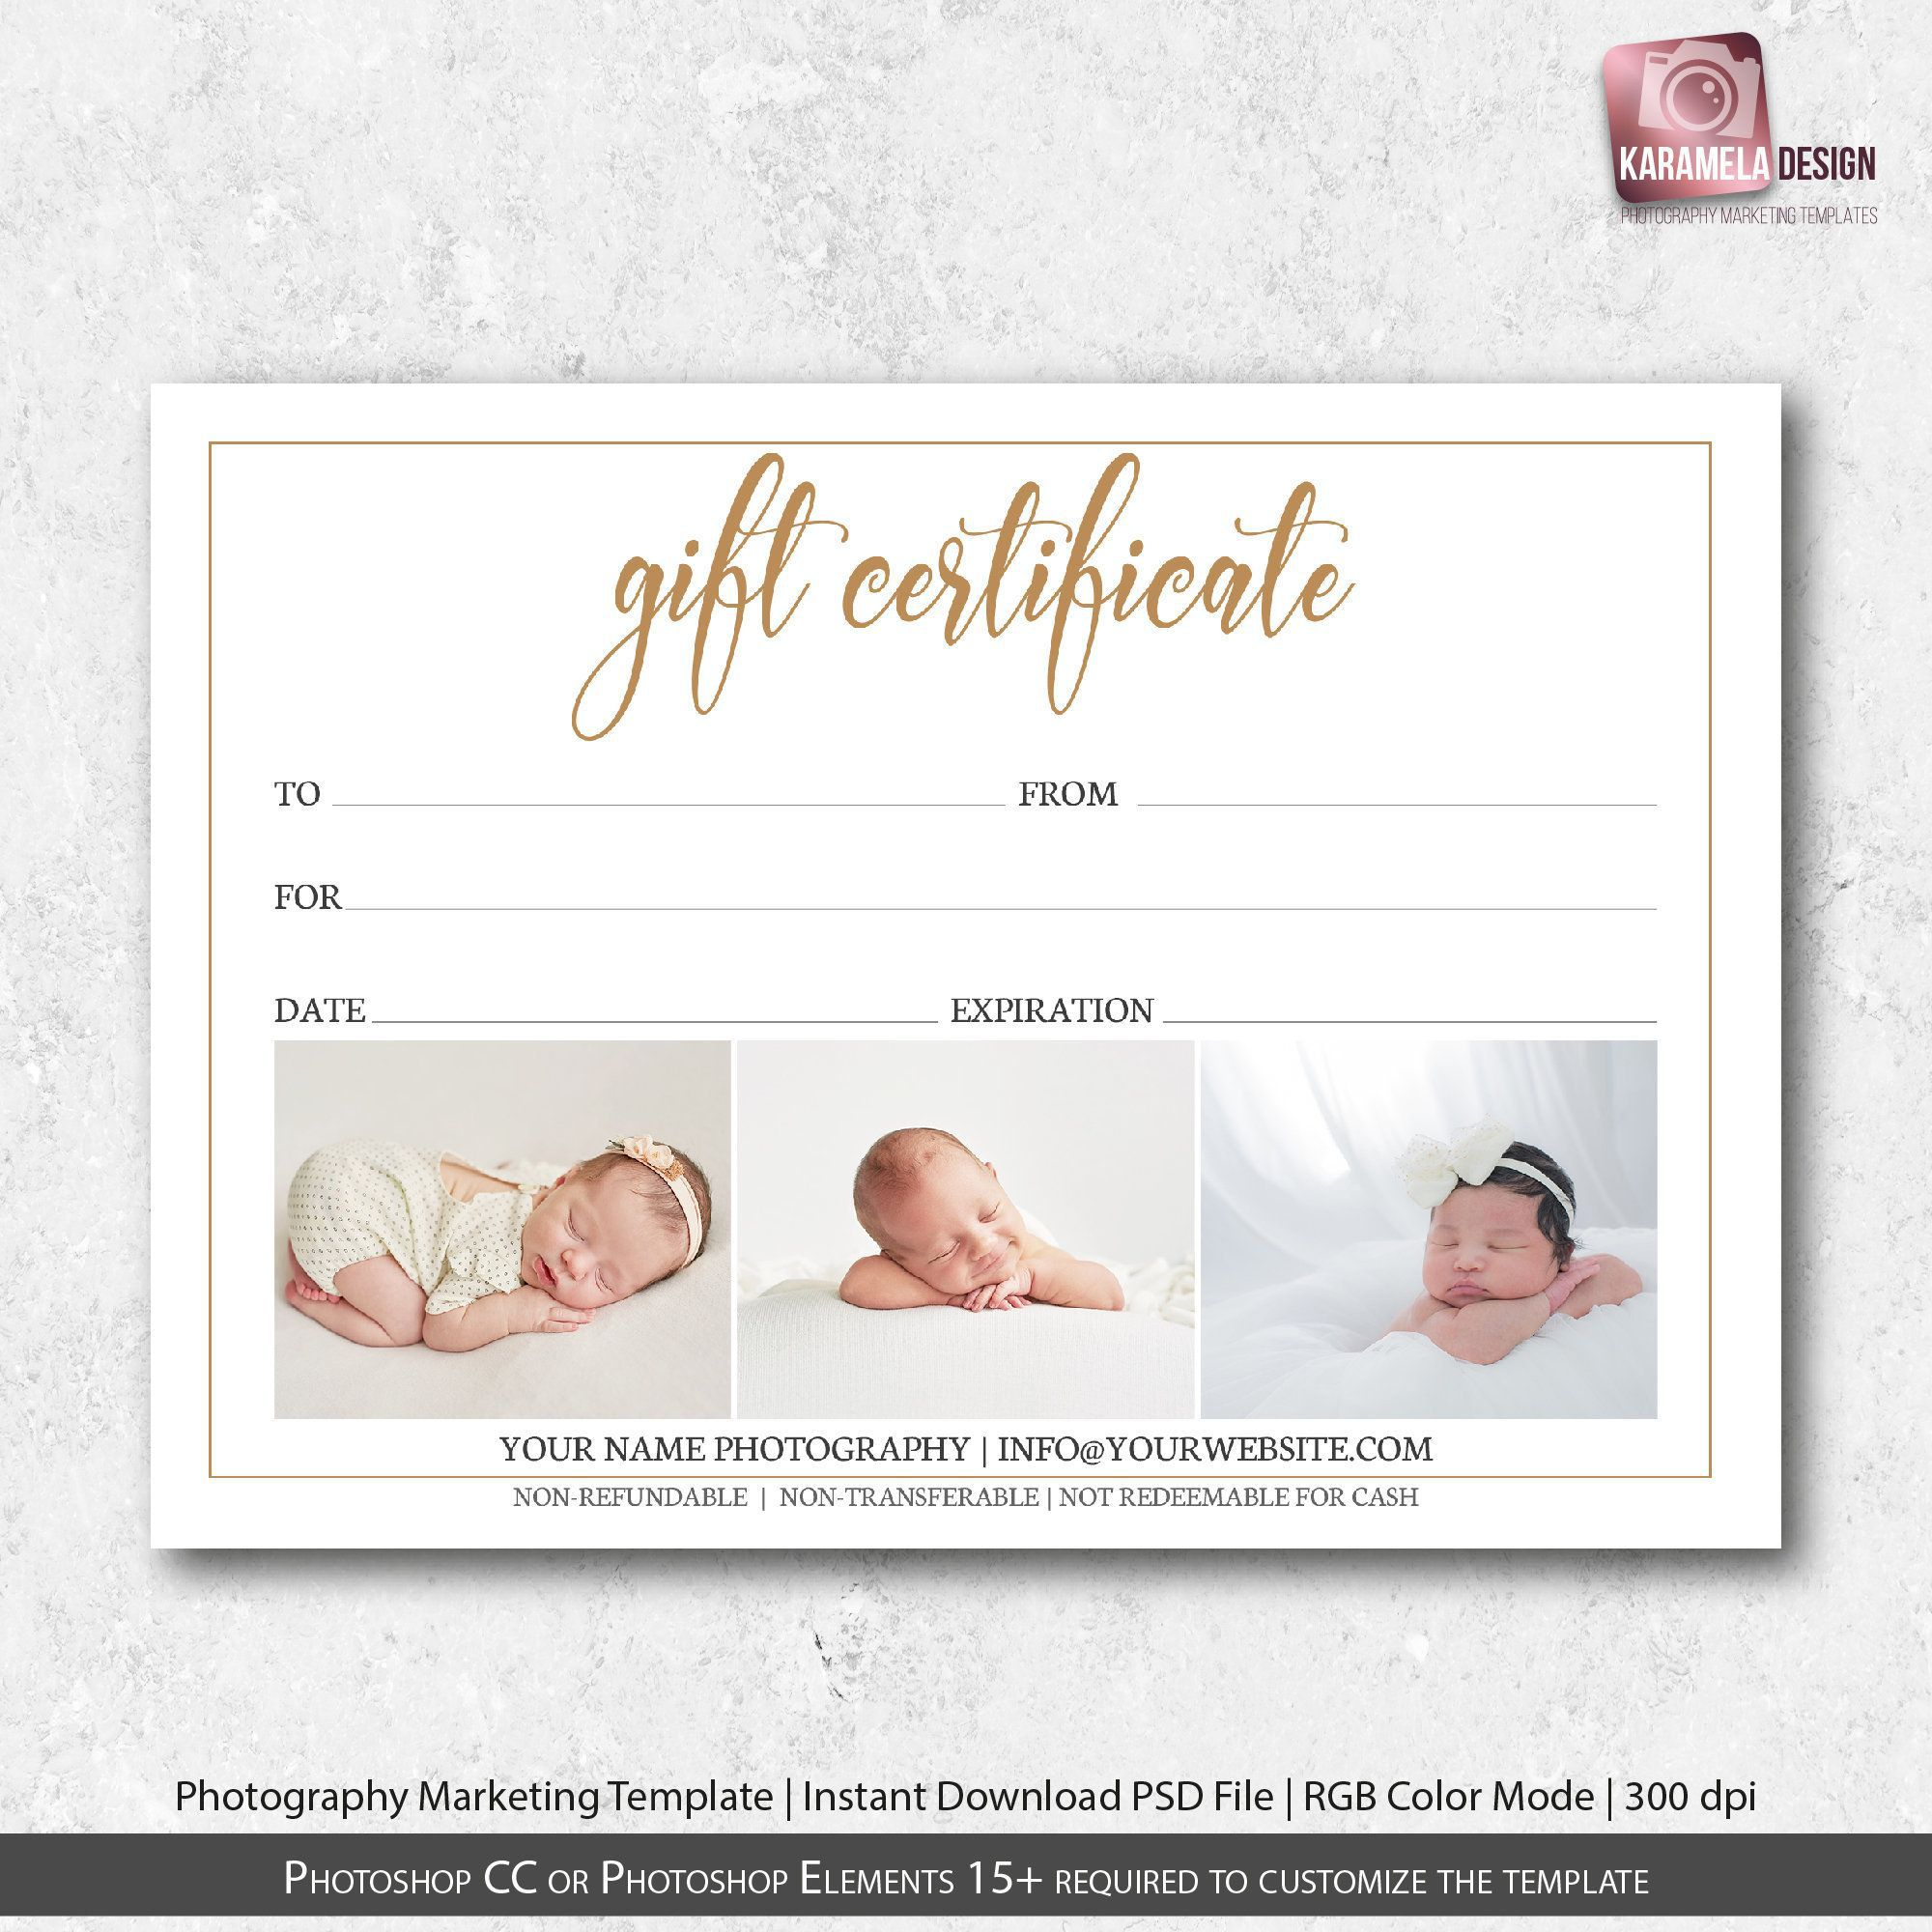 000 Beautiful Photography Gift Certificate Template Photoshop Free Photo Full